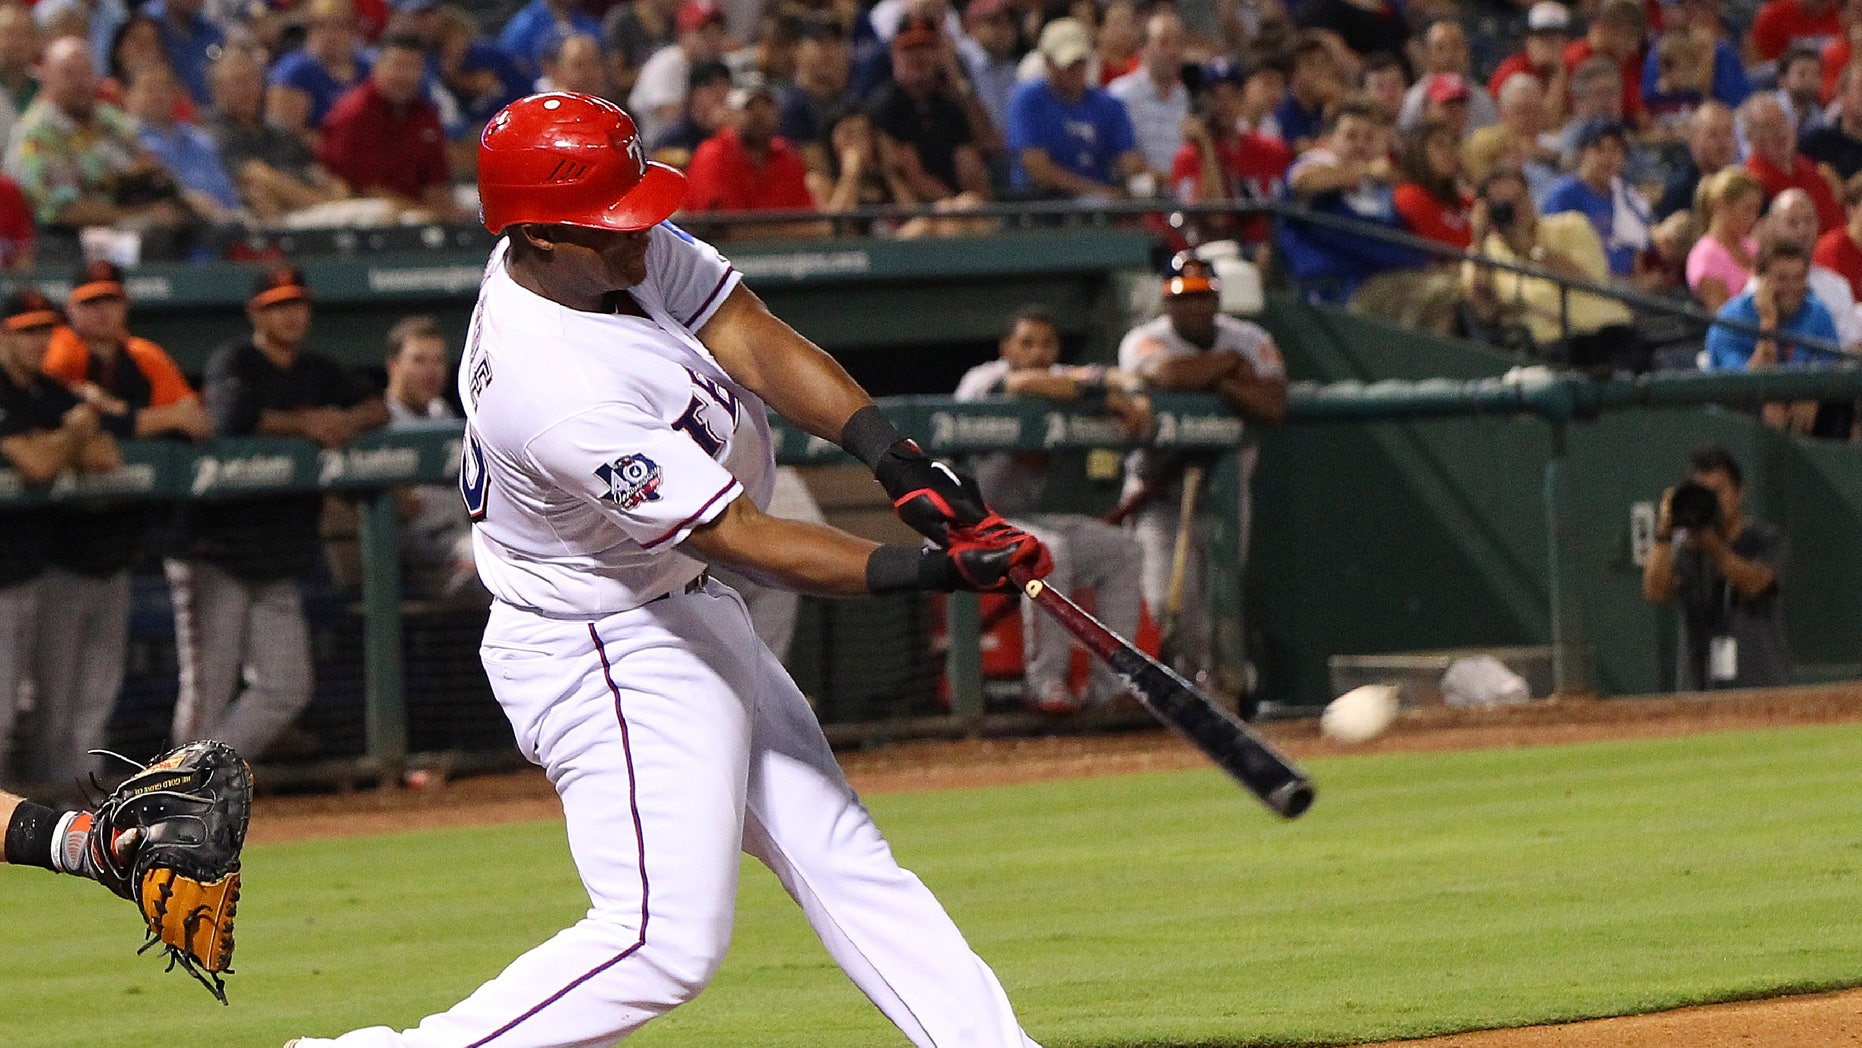 ARLINGTON, TX - AUGUST 21: Adrian Beltre #29 of the Texas Rangers hit a double in the sixth inning against the Baltimore Orioles at Rangers Ballpark in Arlington on August 21, 2012 in Arlington, Texas. (Photo by Rick Yeatts/Getty Images)